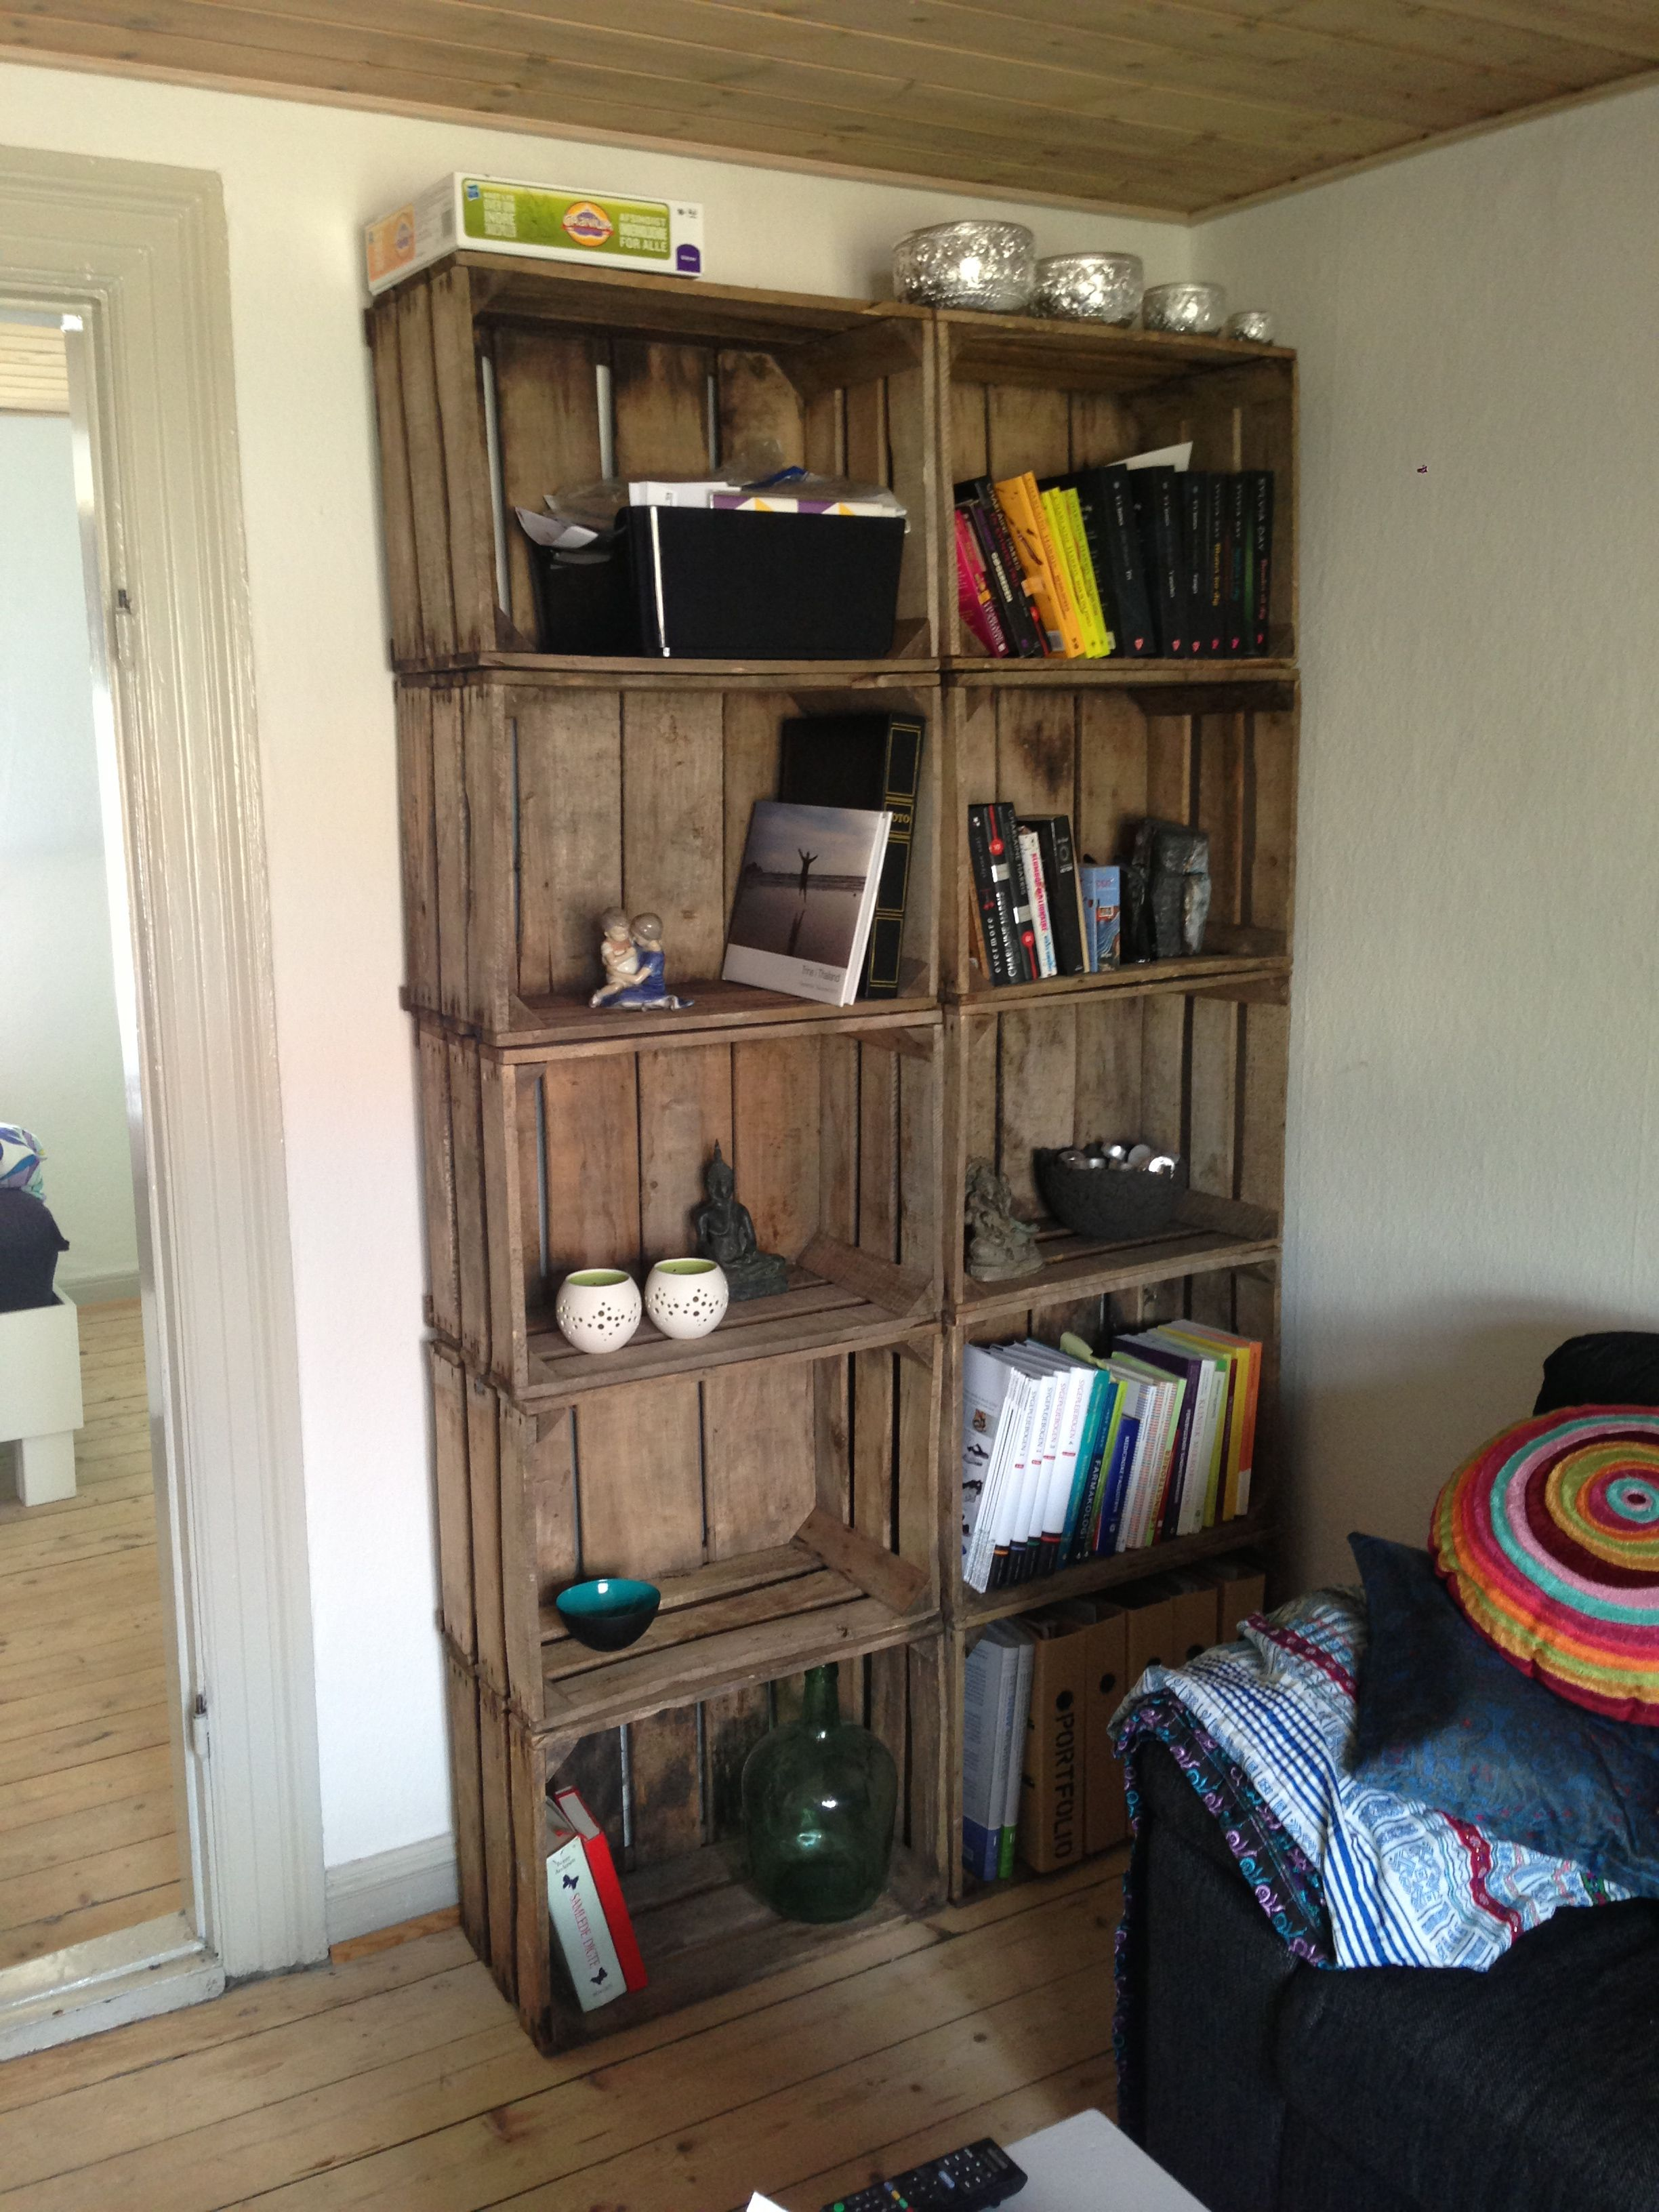 Book shelf out of wooden fruit boxes (With images) | Home ...